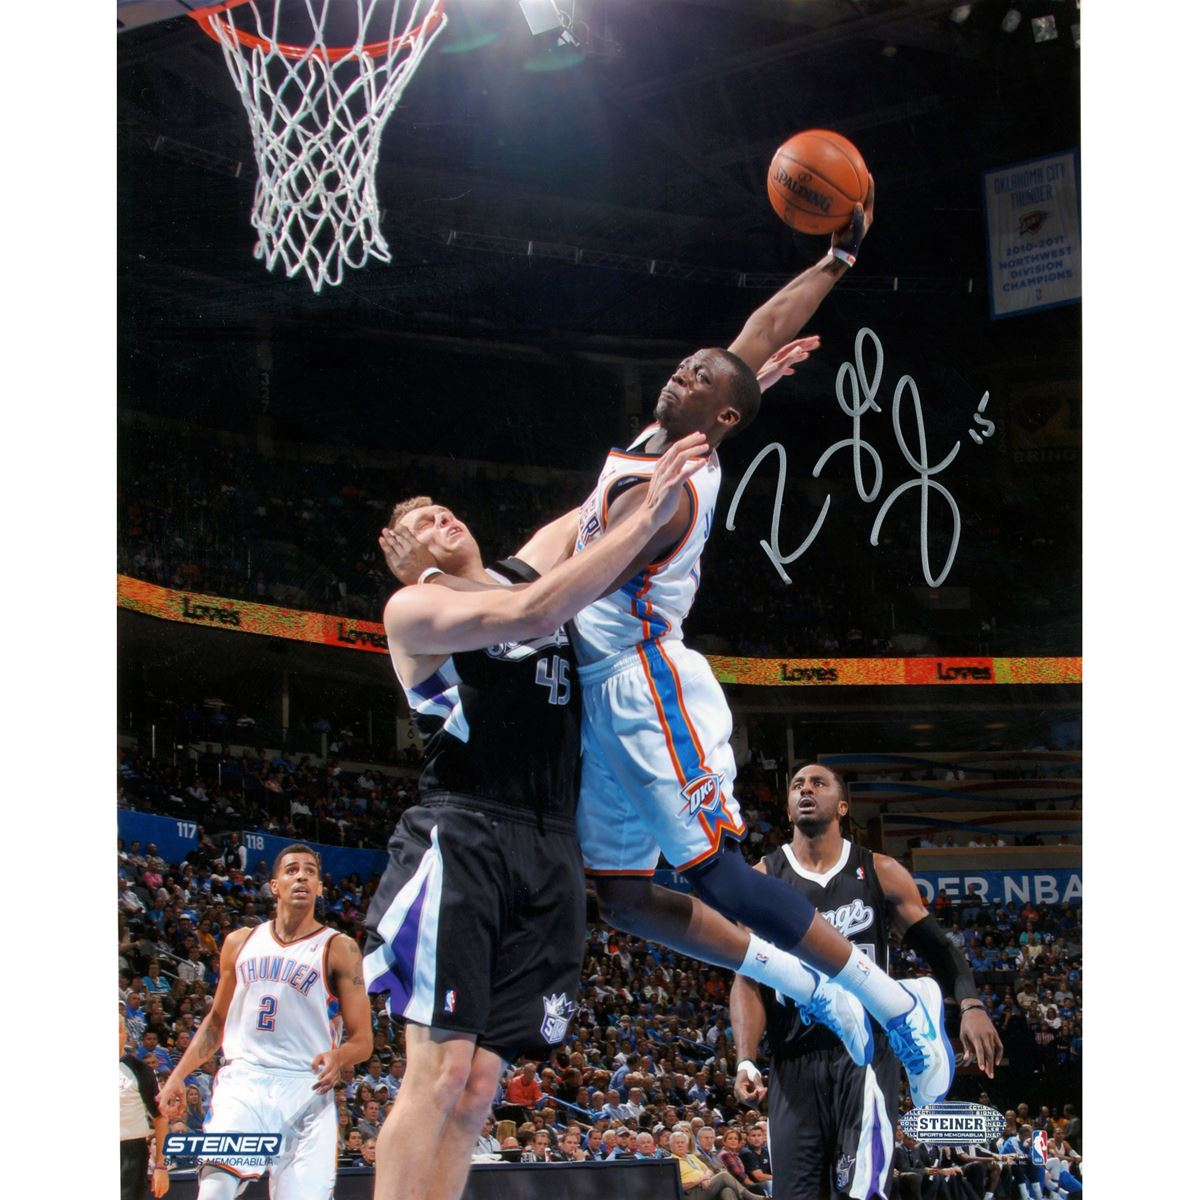 reggie jackson oklahoma city thunder dunk signed 8x10 photo